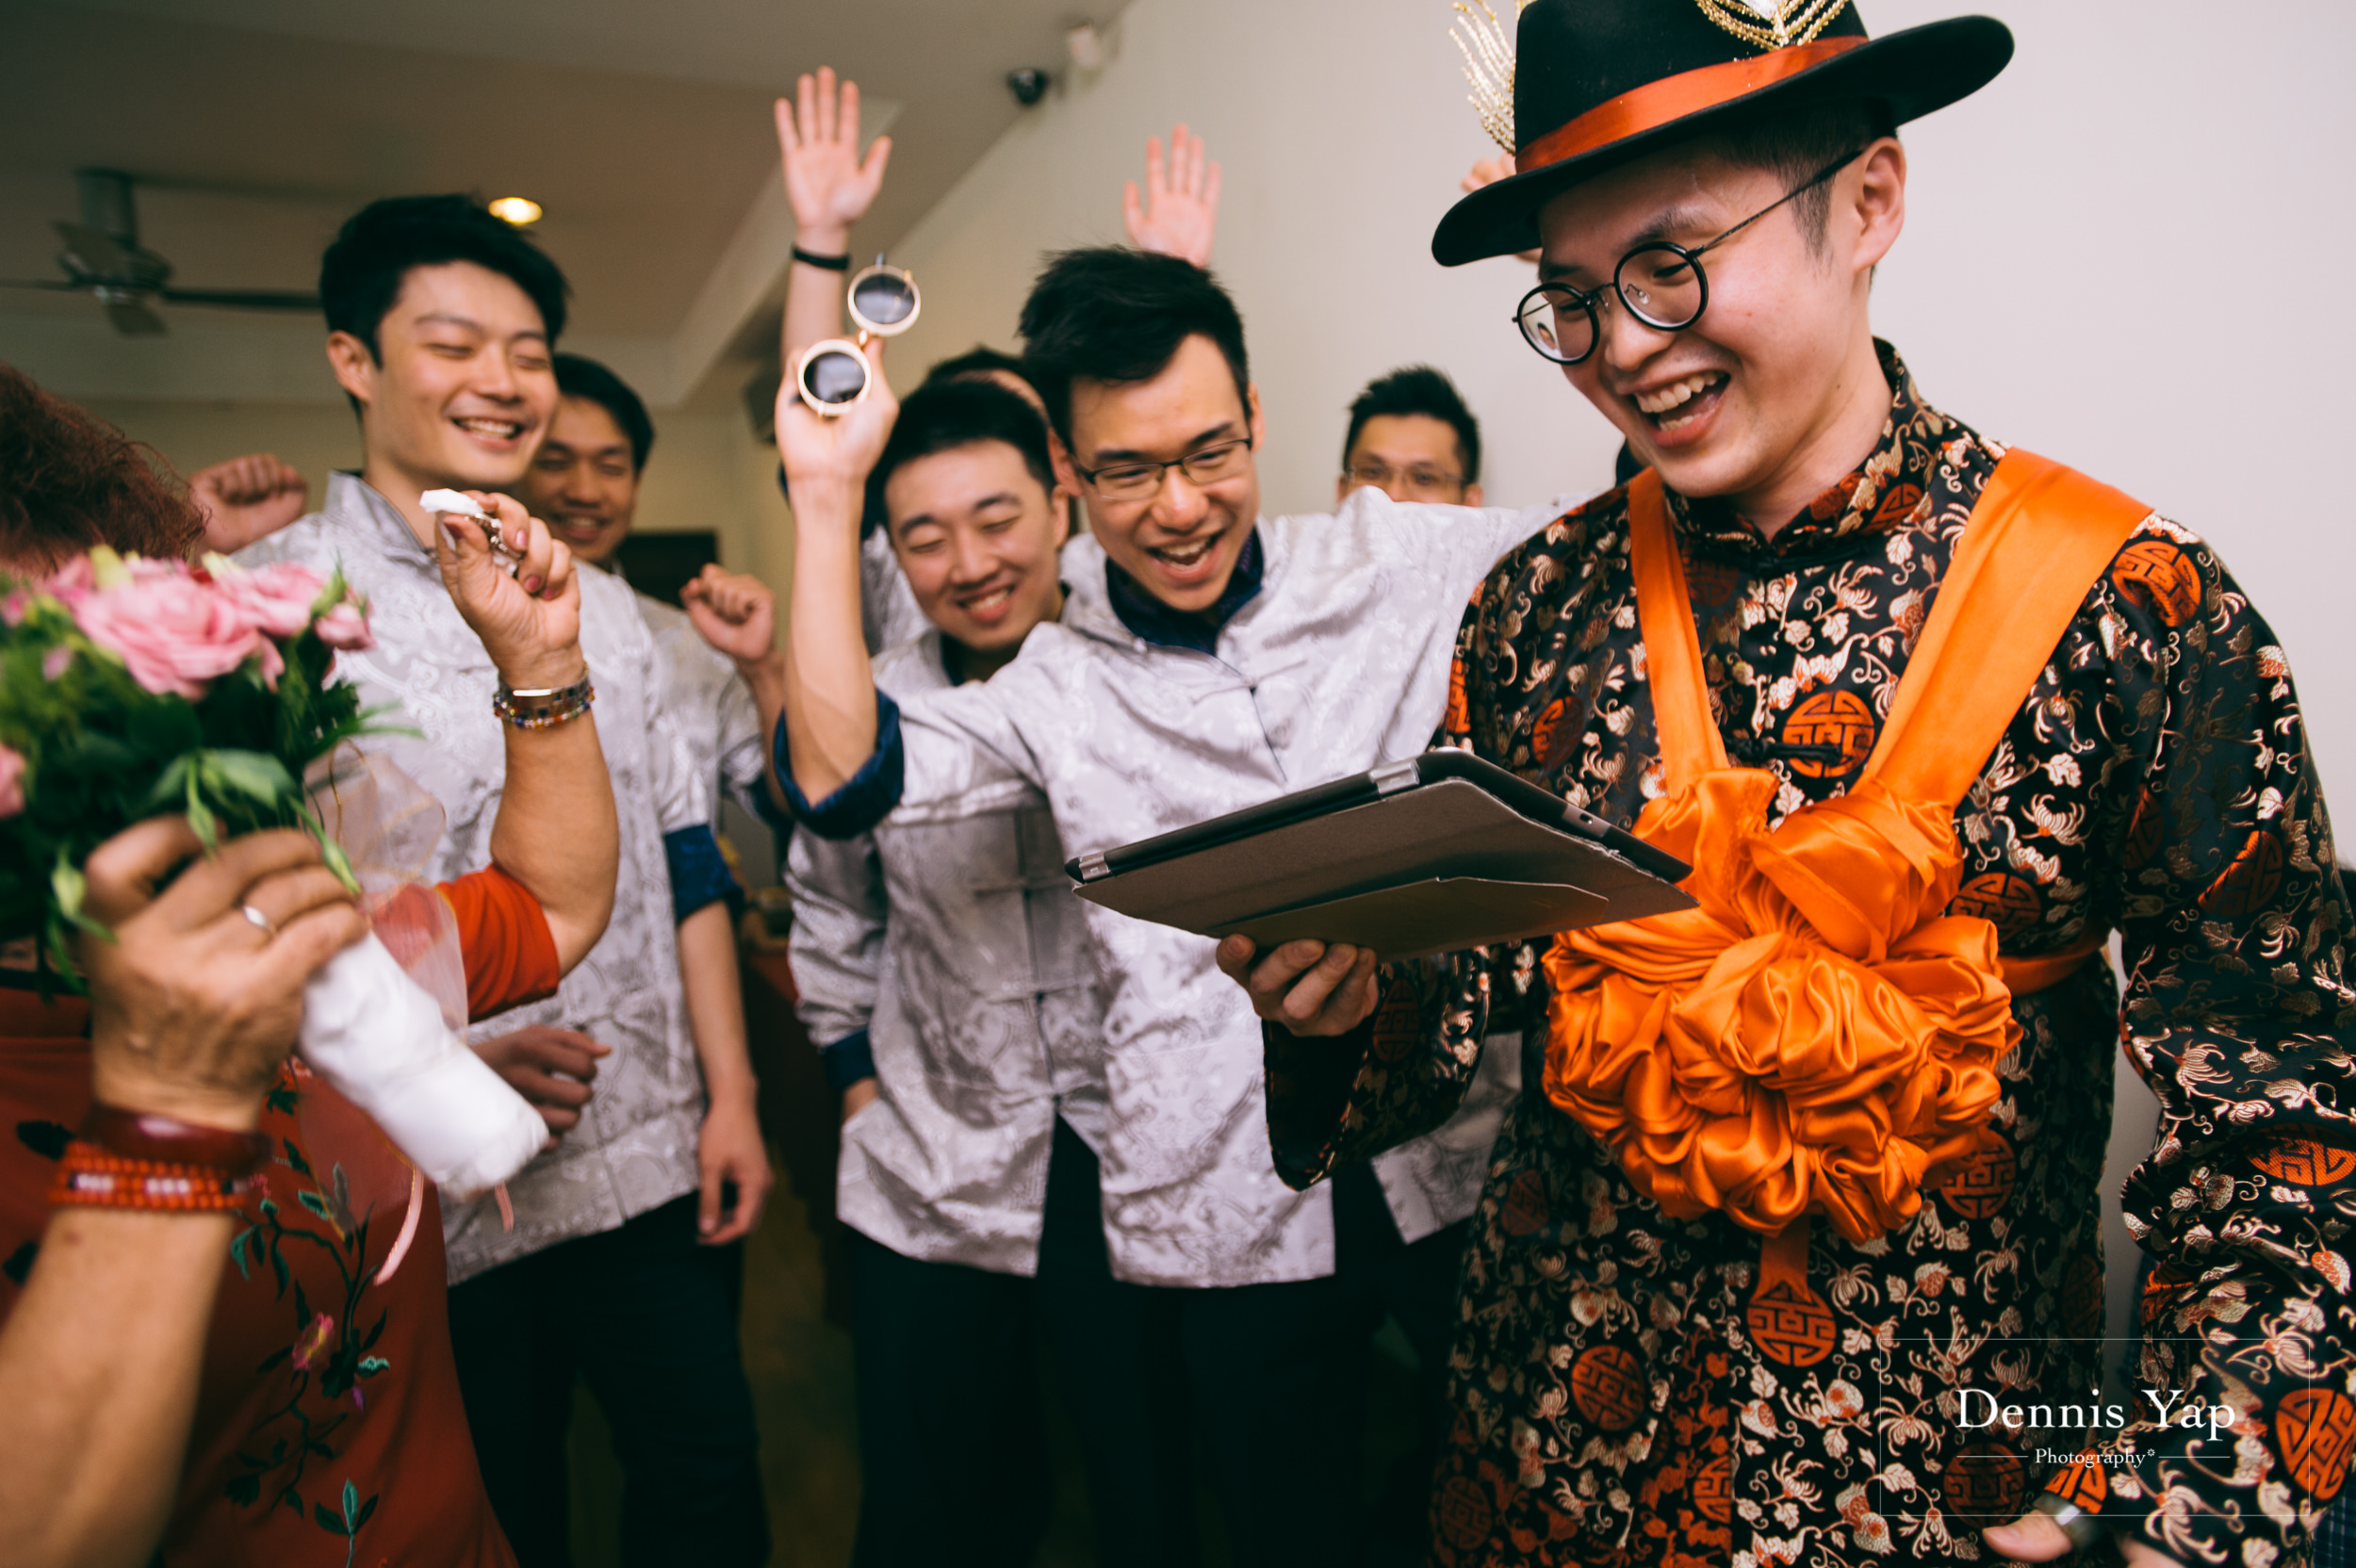 bobby fiona dennis yap photography malaysia wedding photographer chinese traditional-74.jpg